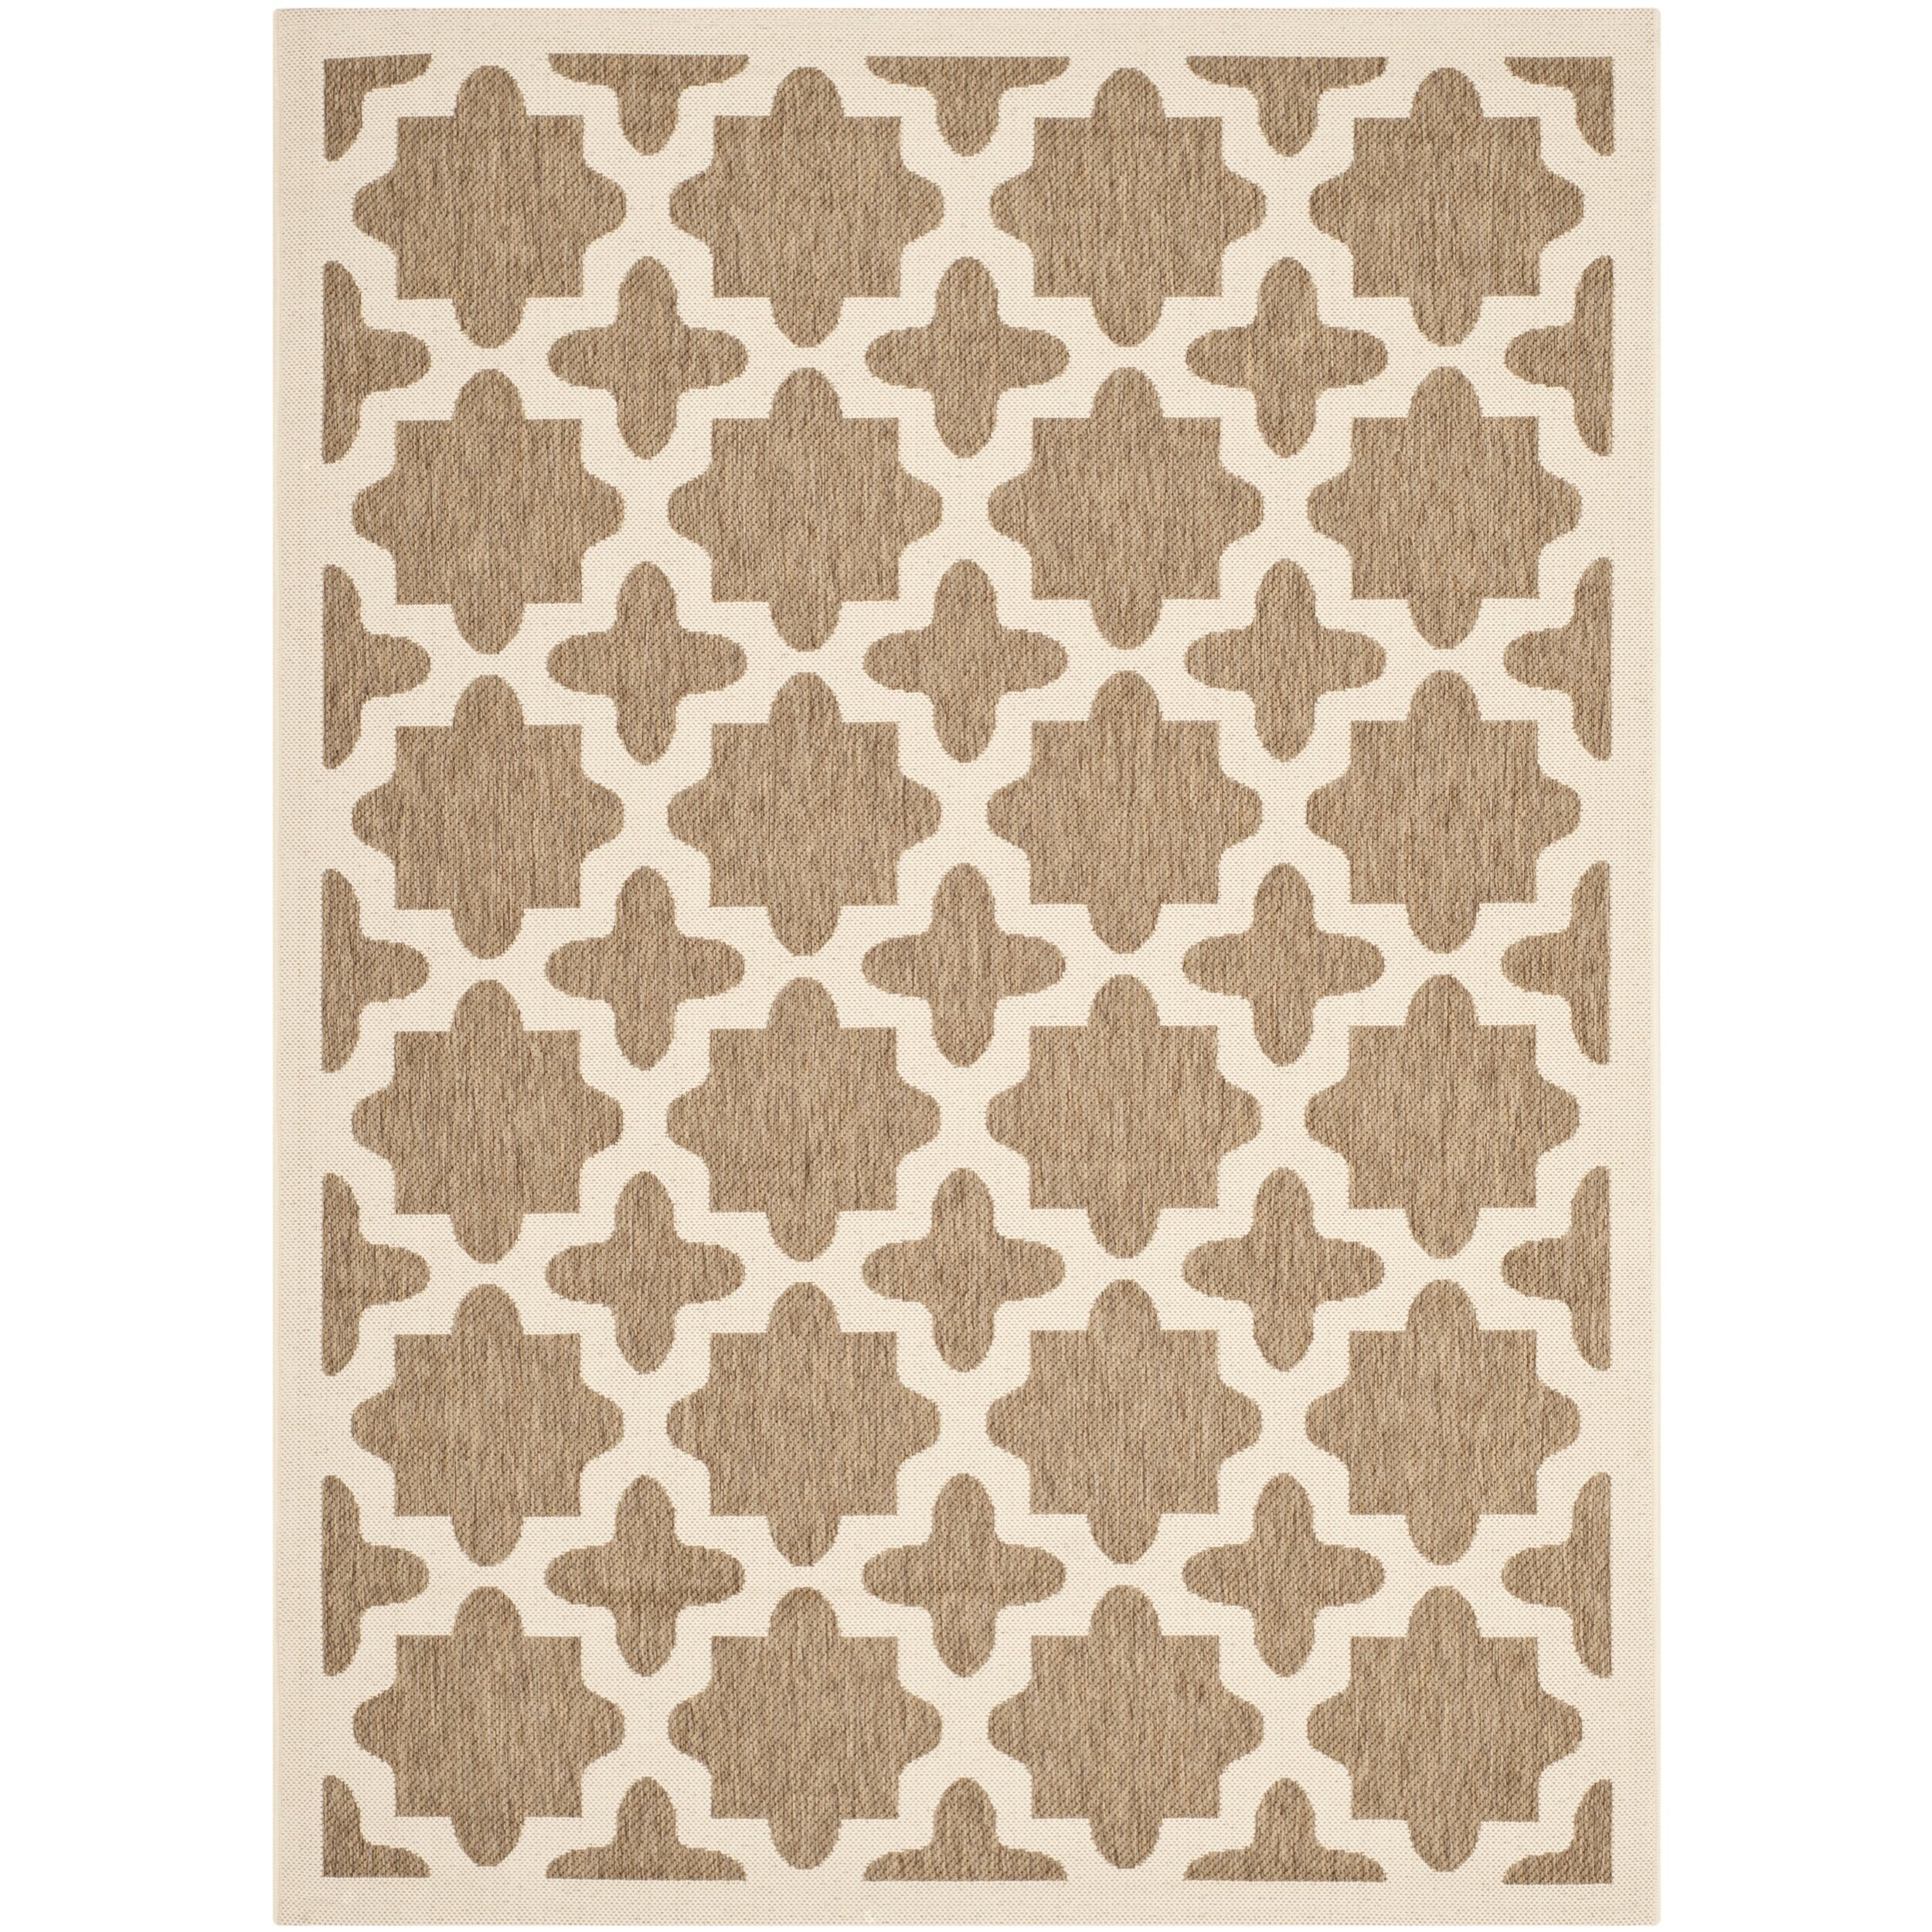 Safavieh Courtyard Brown Bone Indoor Outdoor Area Rug